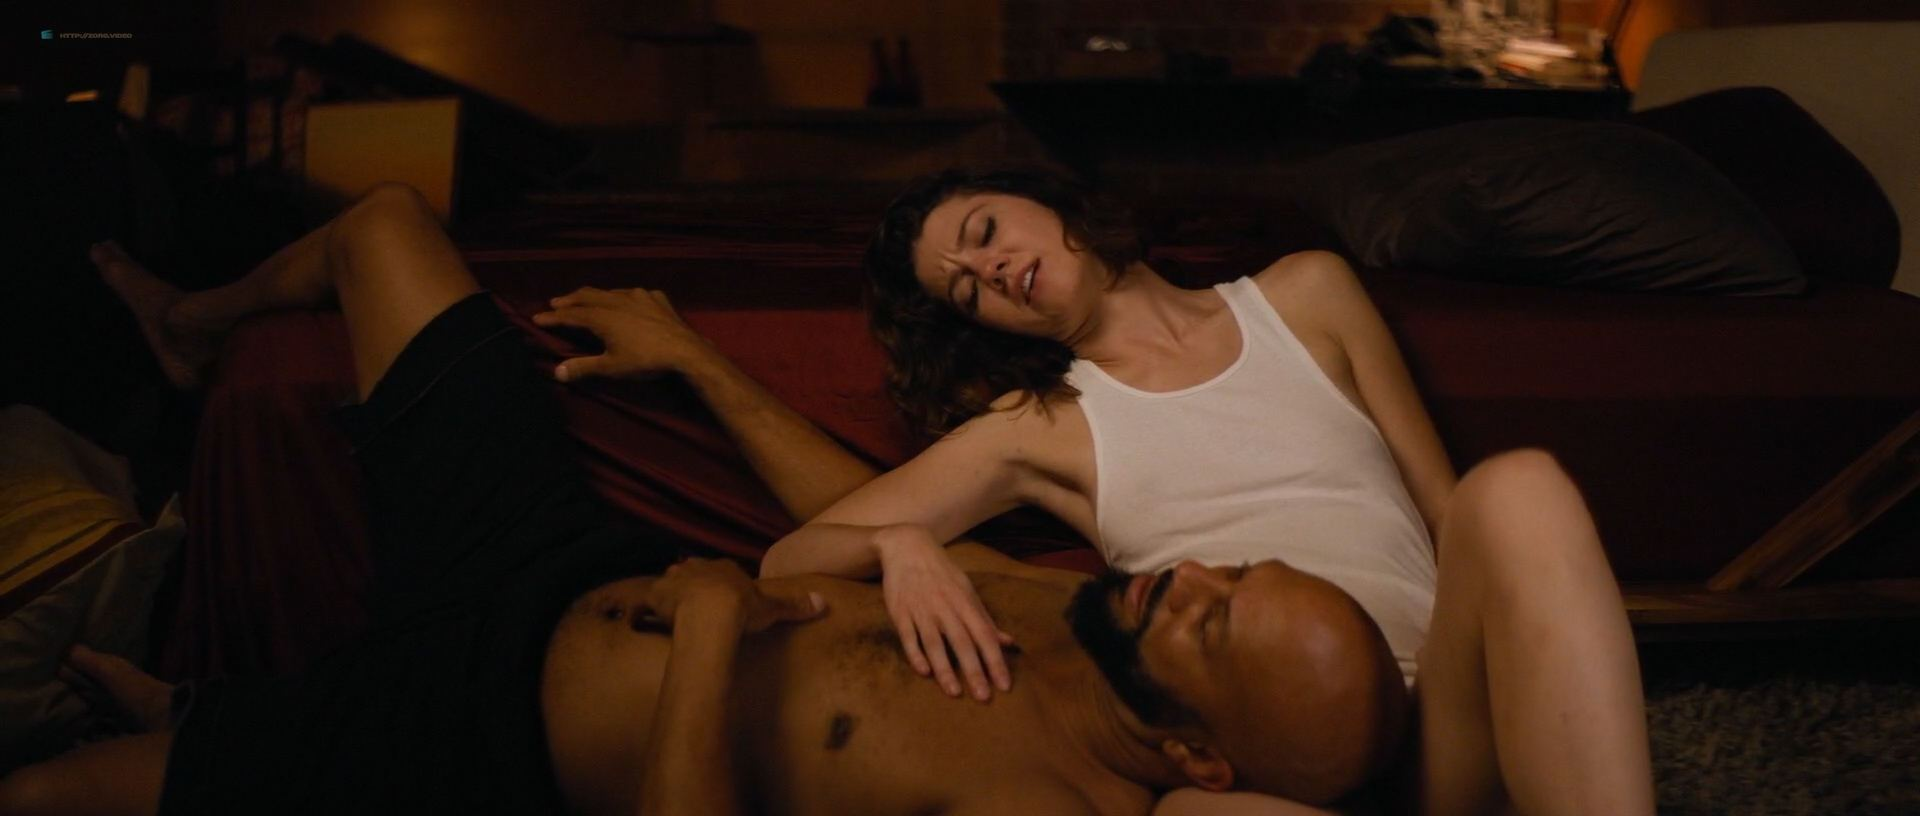 1118161722642_01_Mary-Elizabeth-Winstead-nude-topless-and-hot-All-About-Nina-2018-HD-1080p-014.jpg